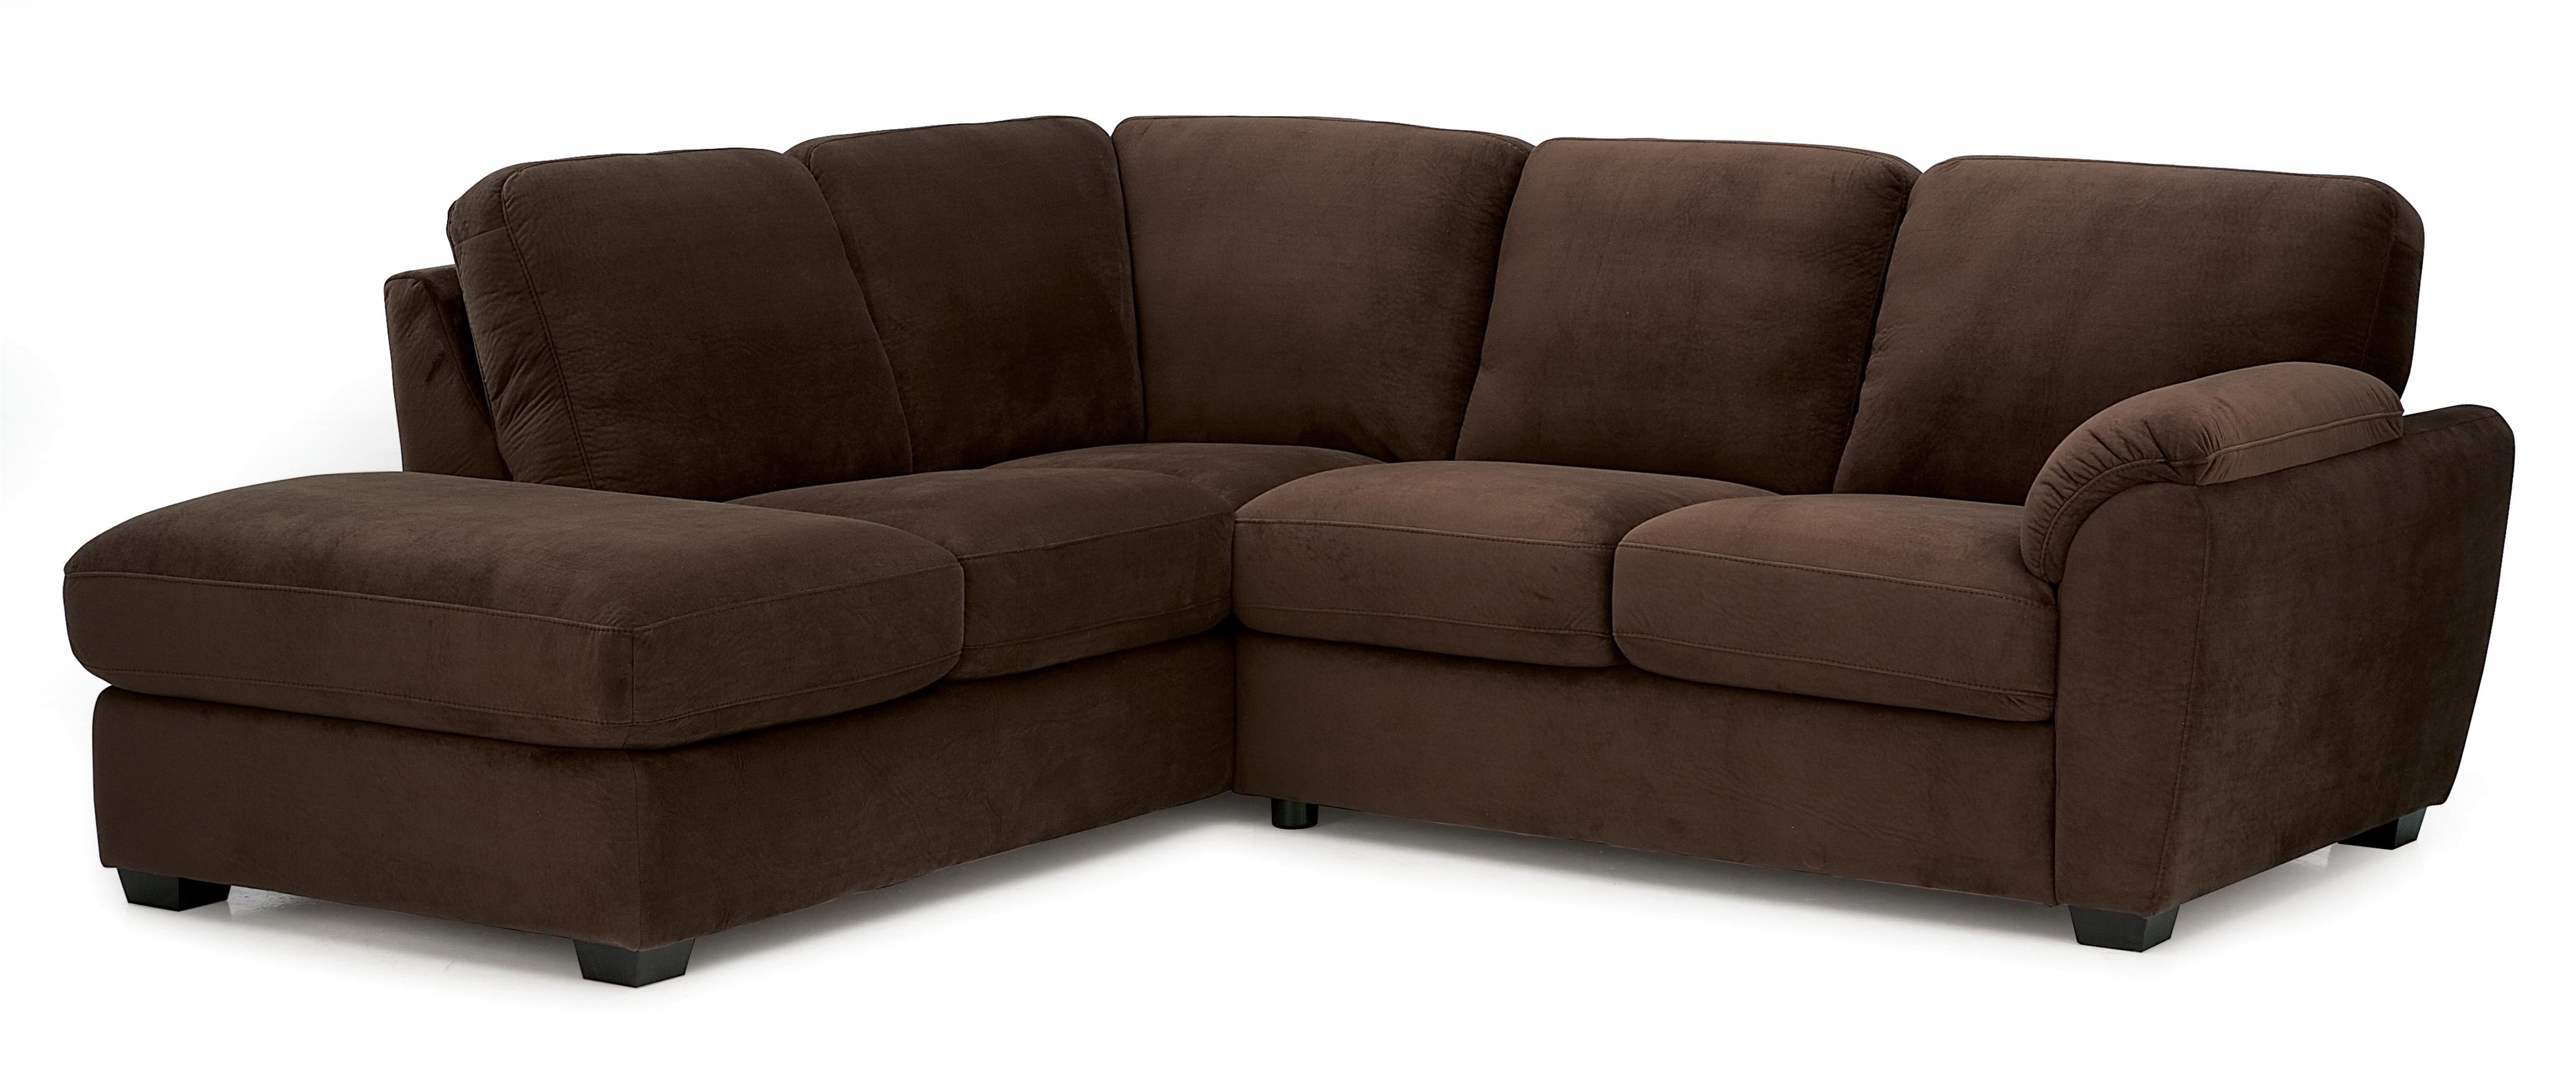 Palliser Lanza Casual Sectional Sofa With Rhf Corner Chaise – Ahfa Within Johnson City Tn Sectional Sofas (Image 7 of 10)